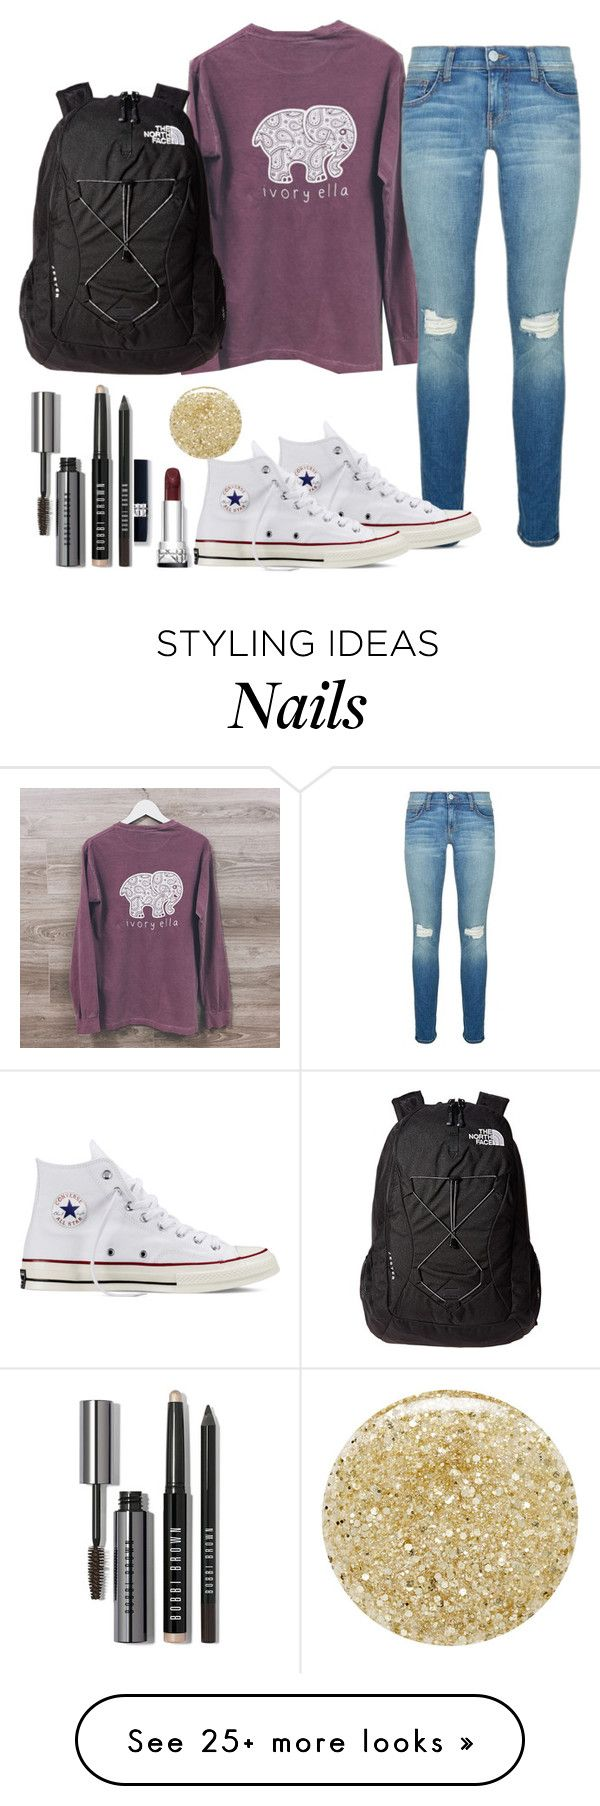 """""""Ivory#2"""" by fashionworldoflove on Polyvore featuring Rebecca Minkoff, Converse, The North Face, Bobbi Brown Cosmetics and Lancôme"""